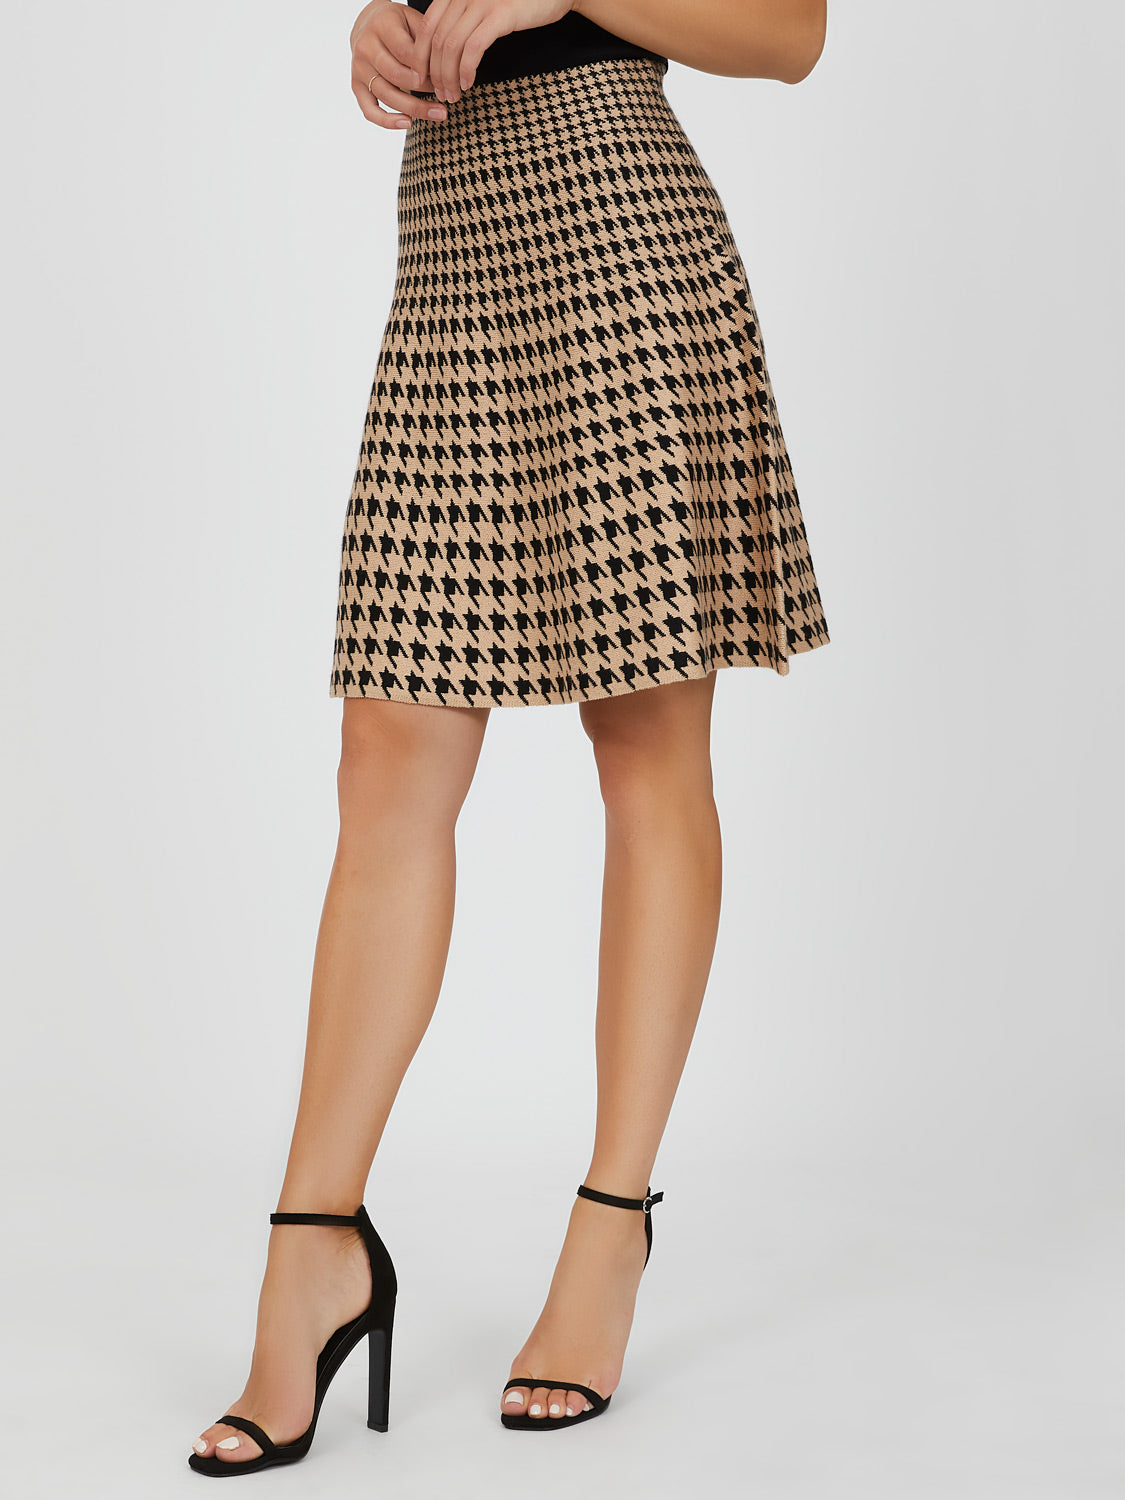 Sweater Knit Houndstooth Midi Skirt